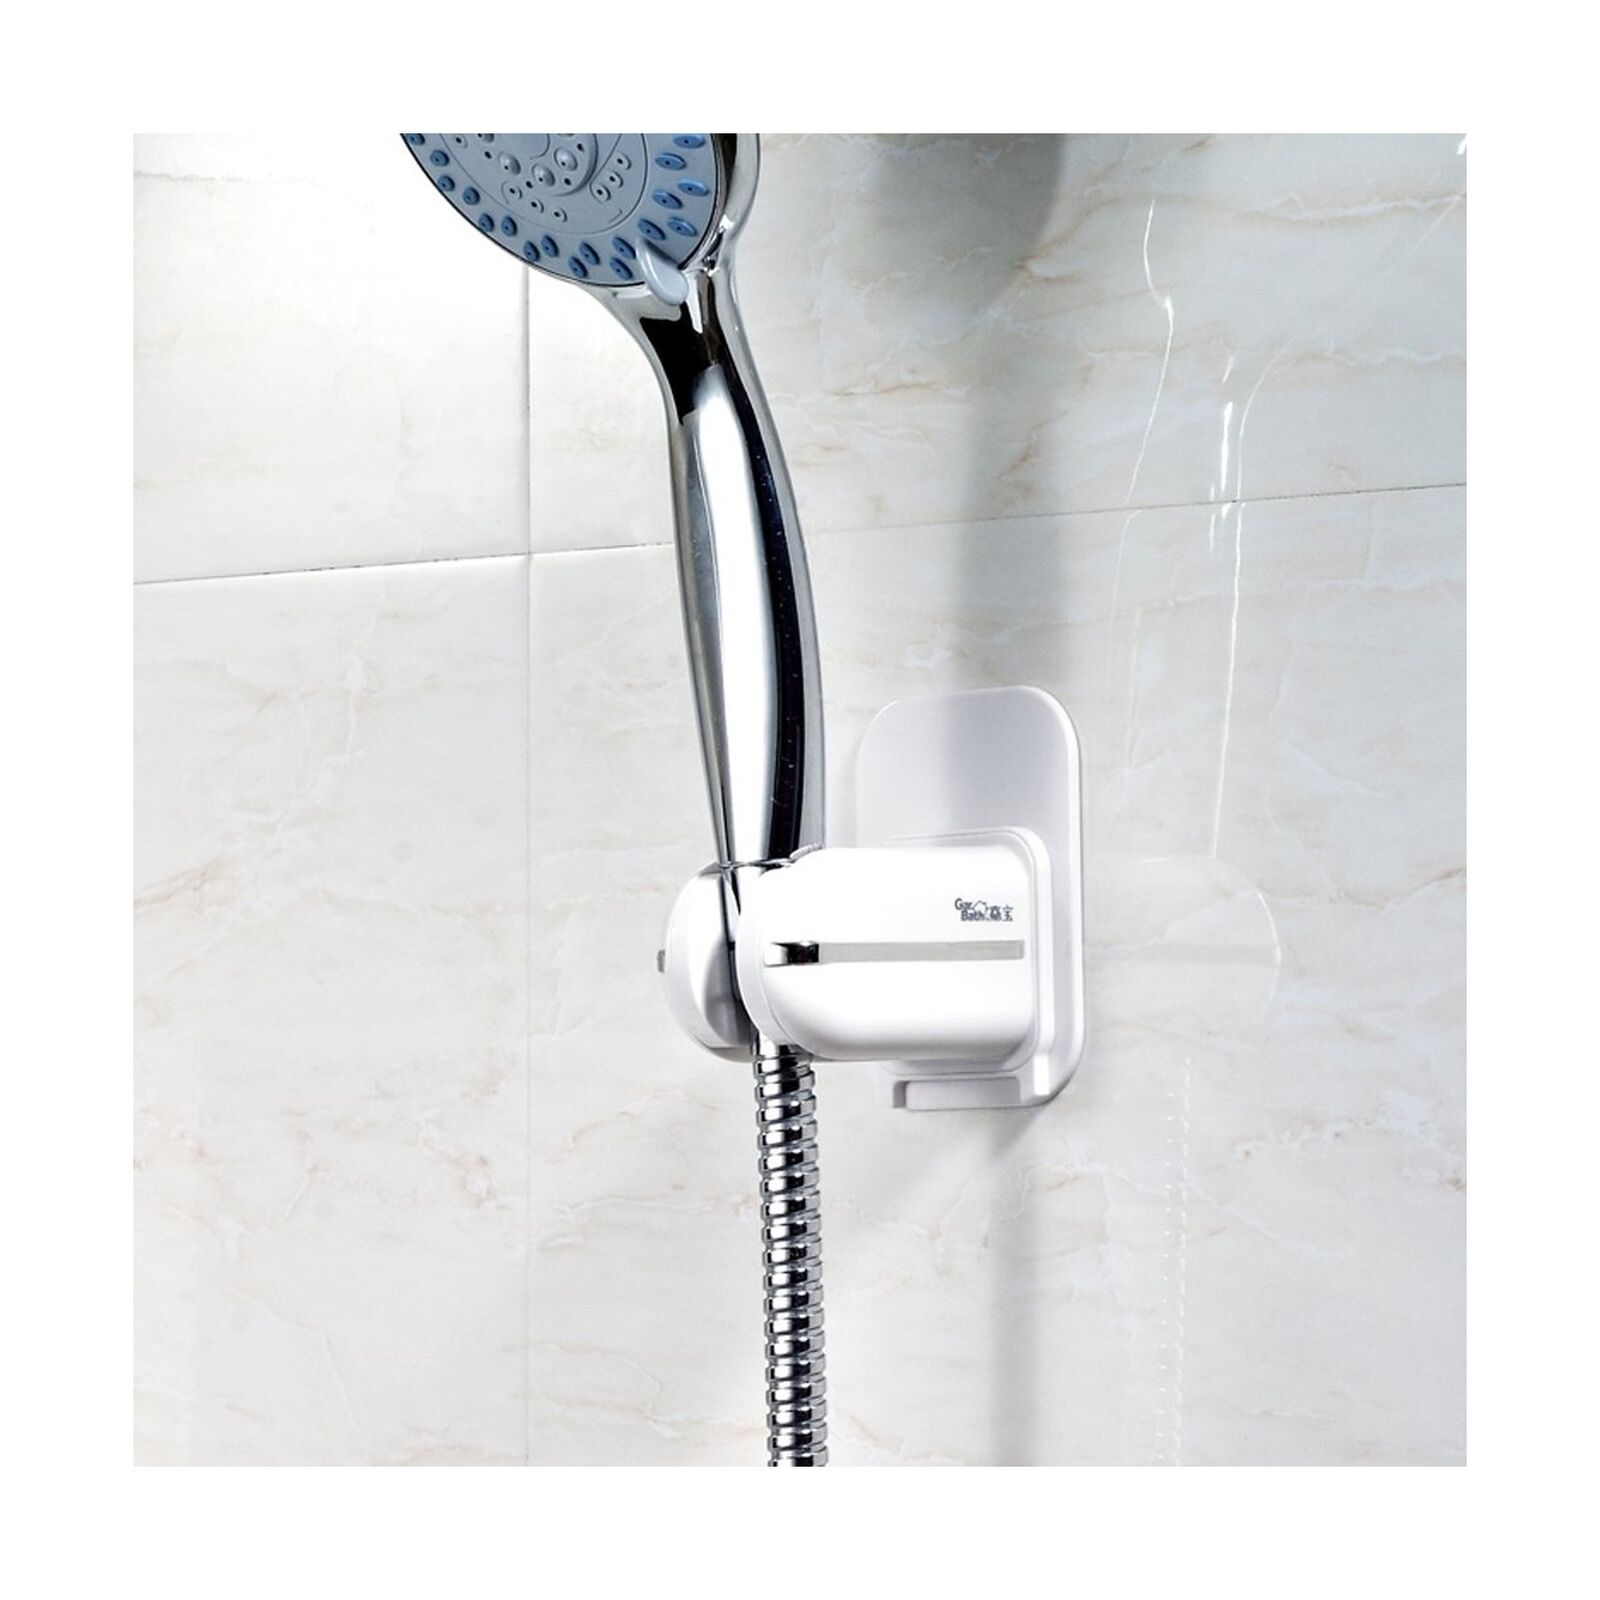 Shower Gaoyu Adjustable Handheld Shower Head Holder Bracket